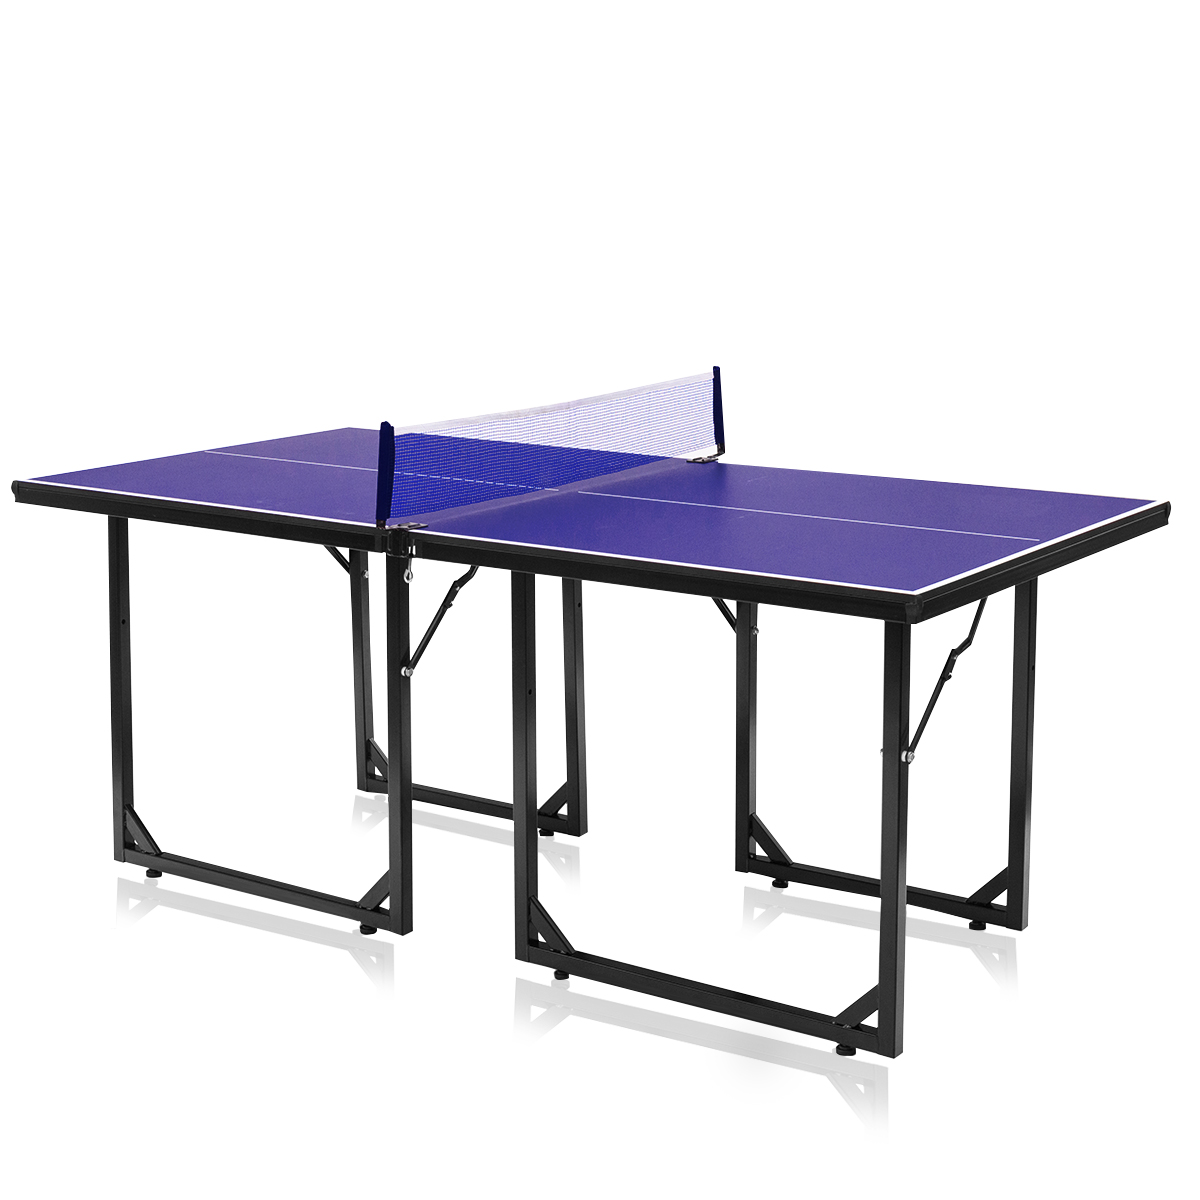 Costway Foldable Midsize Removable Compact Ping-pong Table